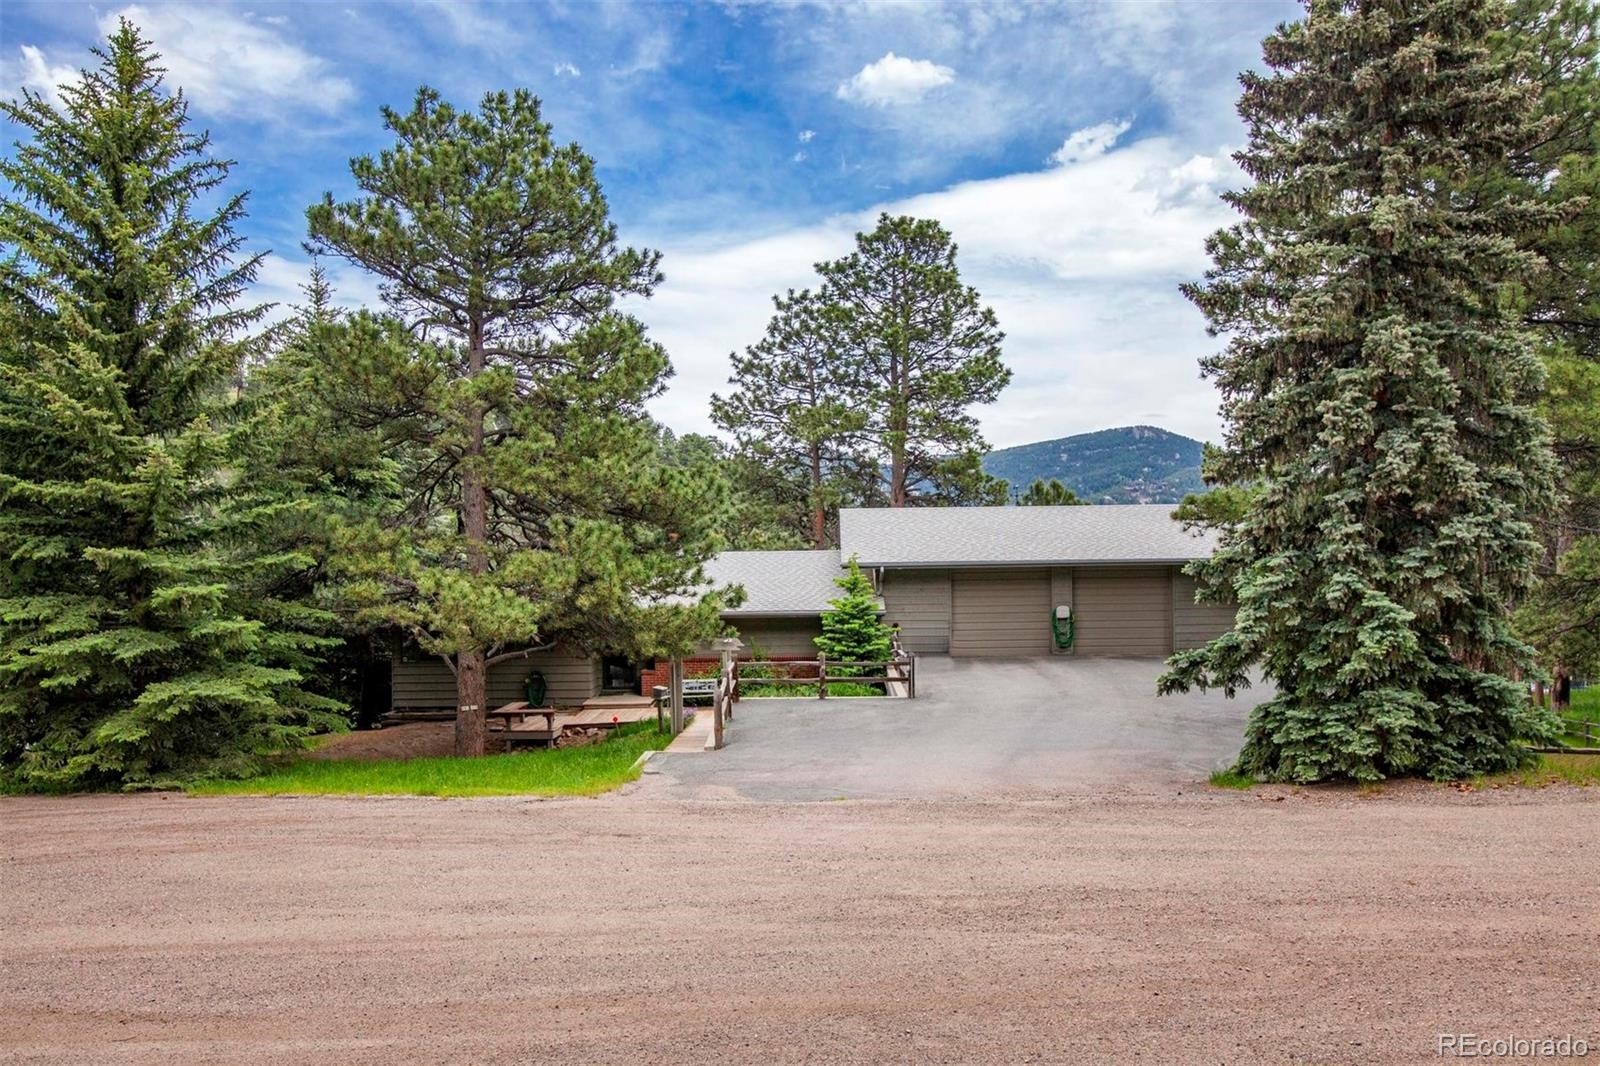 MLS# 5479240 - 2 - 5002 S Syndt Road, Evergreen, CO 80439